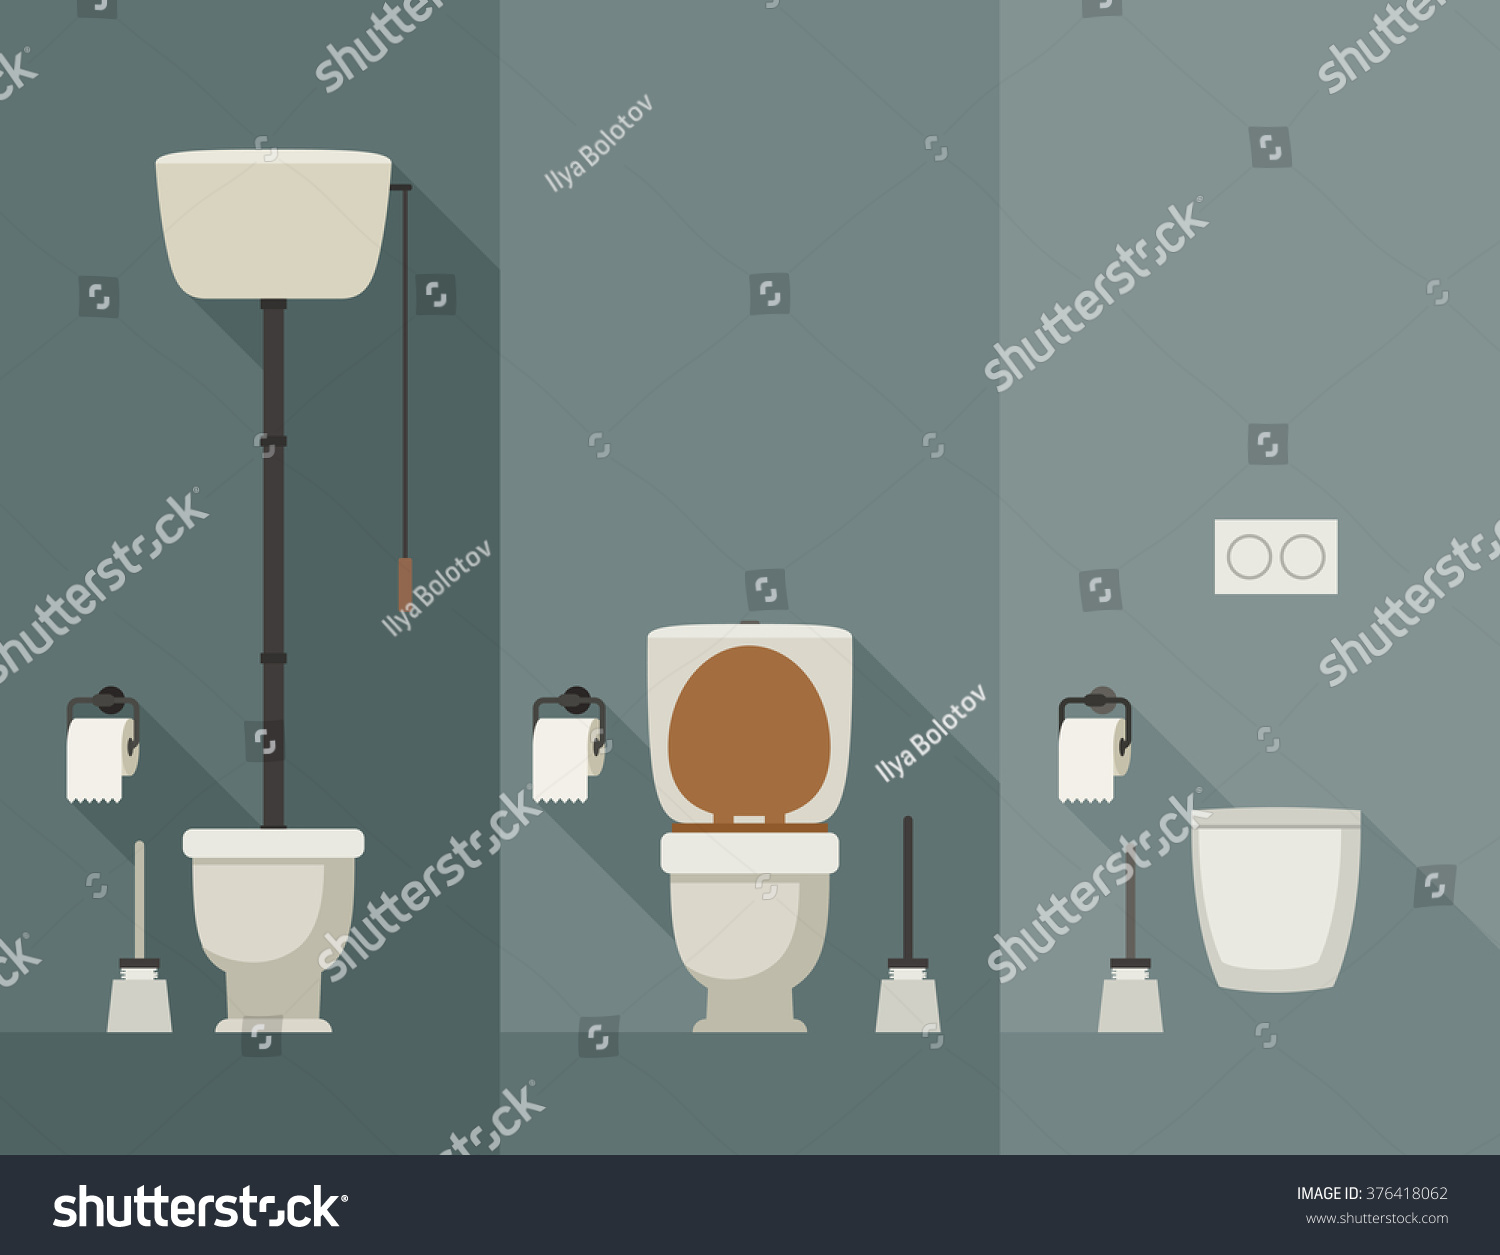 Toilets Long Shadow Flat Style Vector Stock Vector (Royalty Free ...